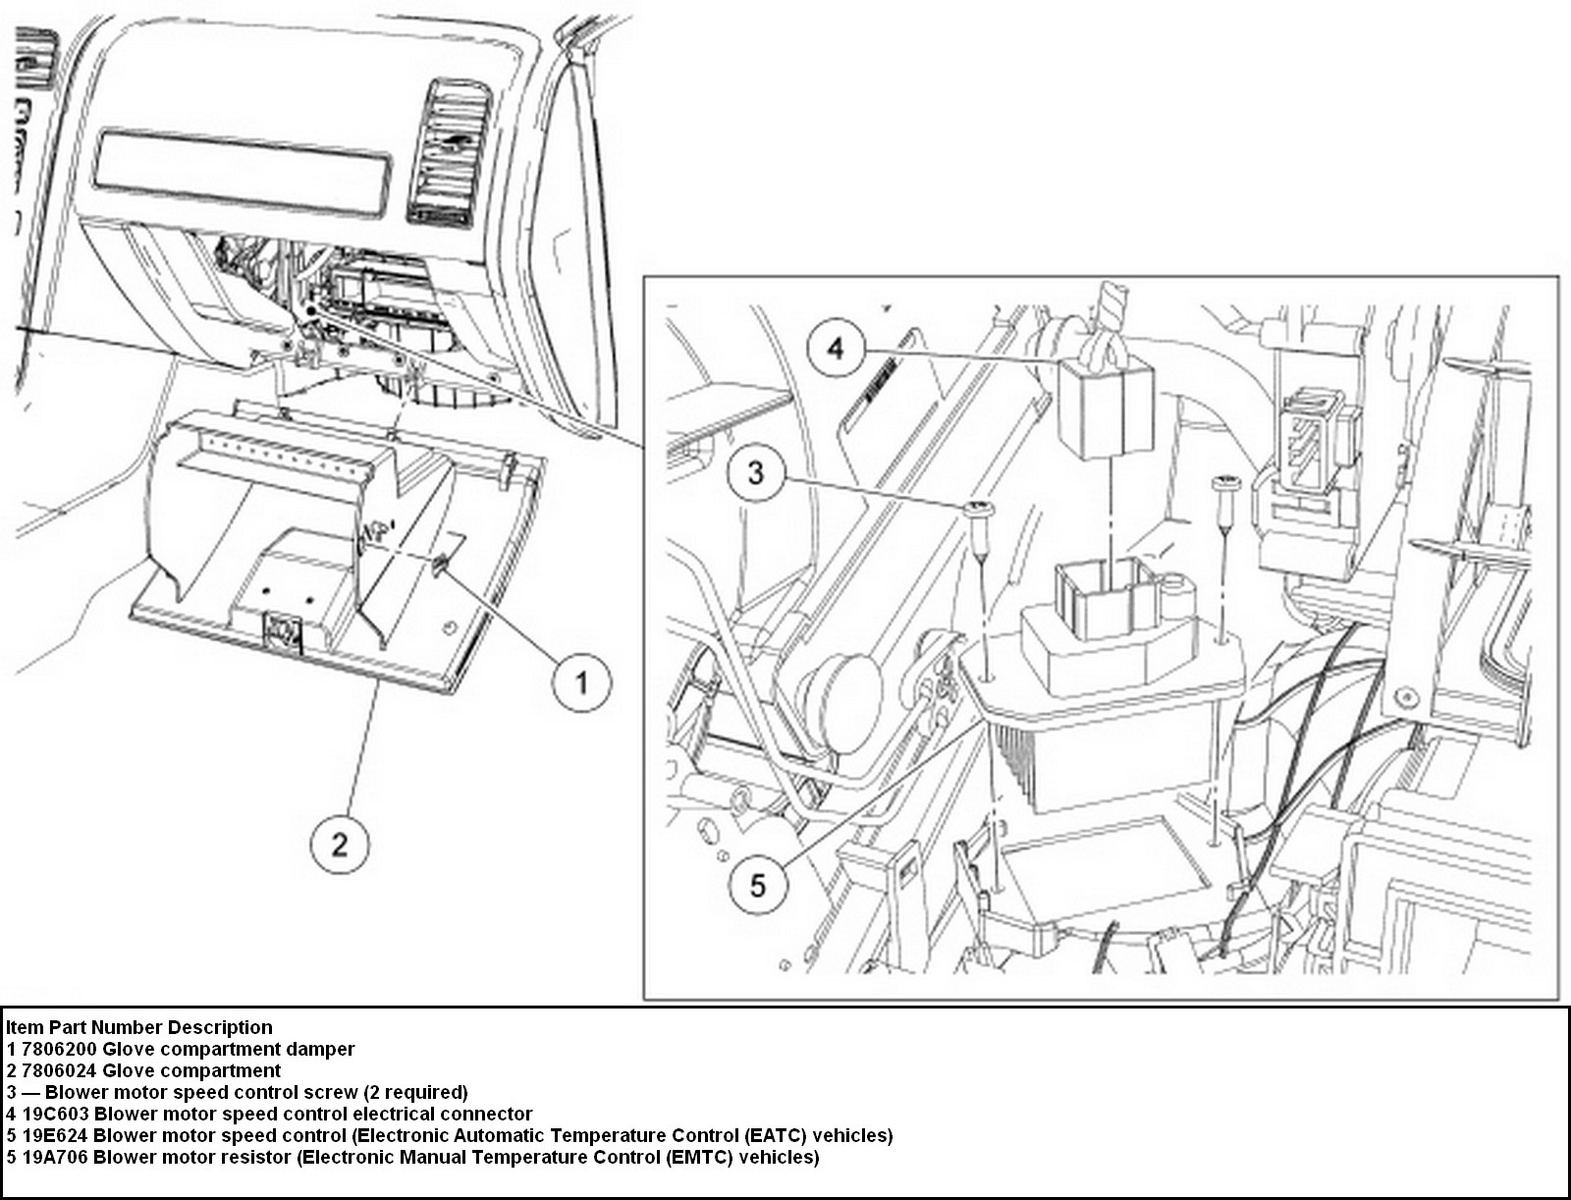 2012 mazda 3 radio wiring diagram with Discussion T24957 Ds624347 on Audi Quattro Wiring Diagram Electrical together with 80505 Ecu Tcm Lost Connection further 2icp2 1998 Dodge Durango Replace Neutral Saftey moreover Ford Focus Se Fuse Panel Diagram Efcaviation additionally AUDI 20CONCERT 20CQ LA1923L.